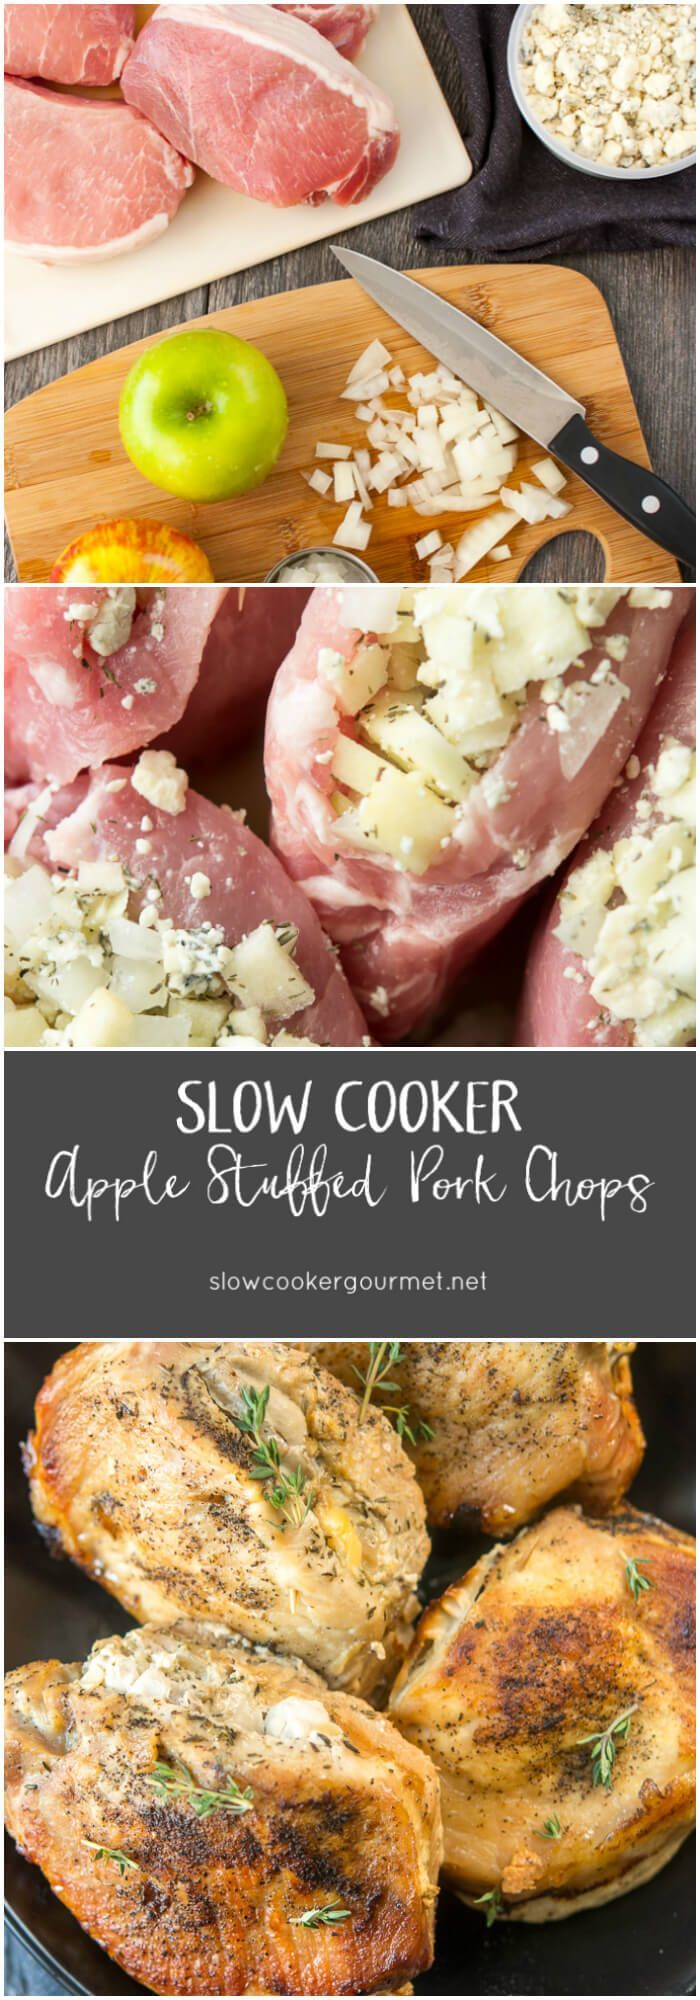 Change up family dinner night with these Slow Cooker Apple Stuffed Pork Chops! Step by step instructions make this recipe simple to follow. A kid favorite!